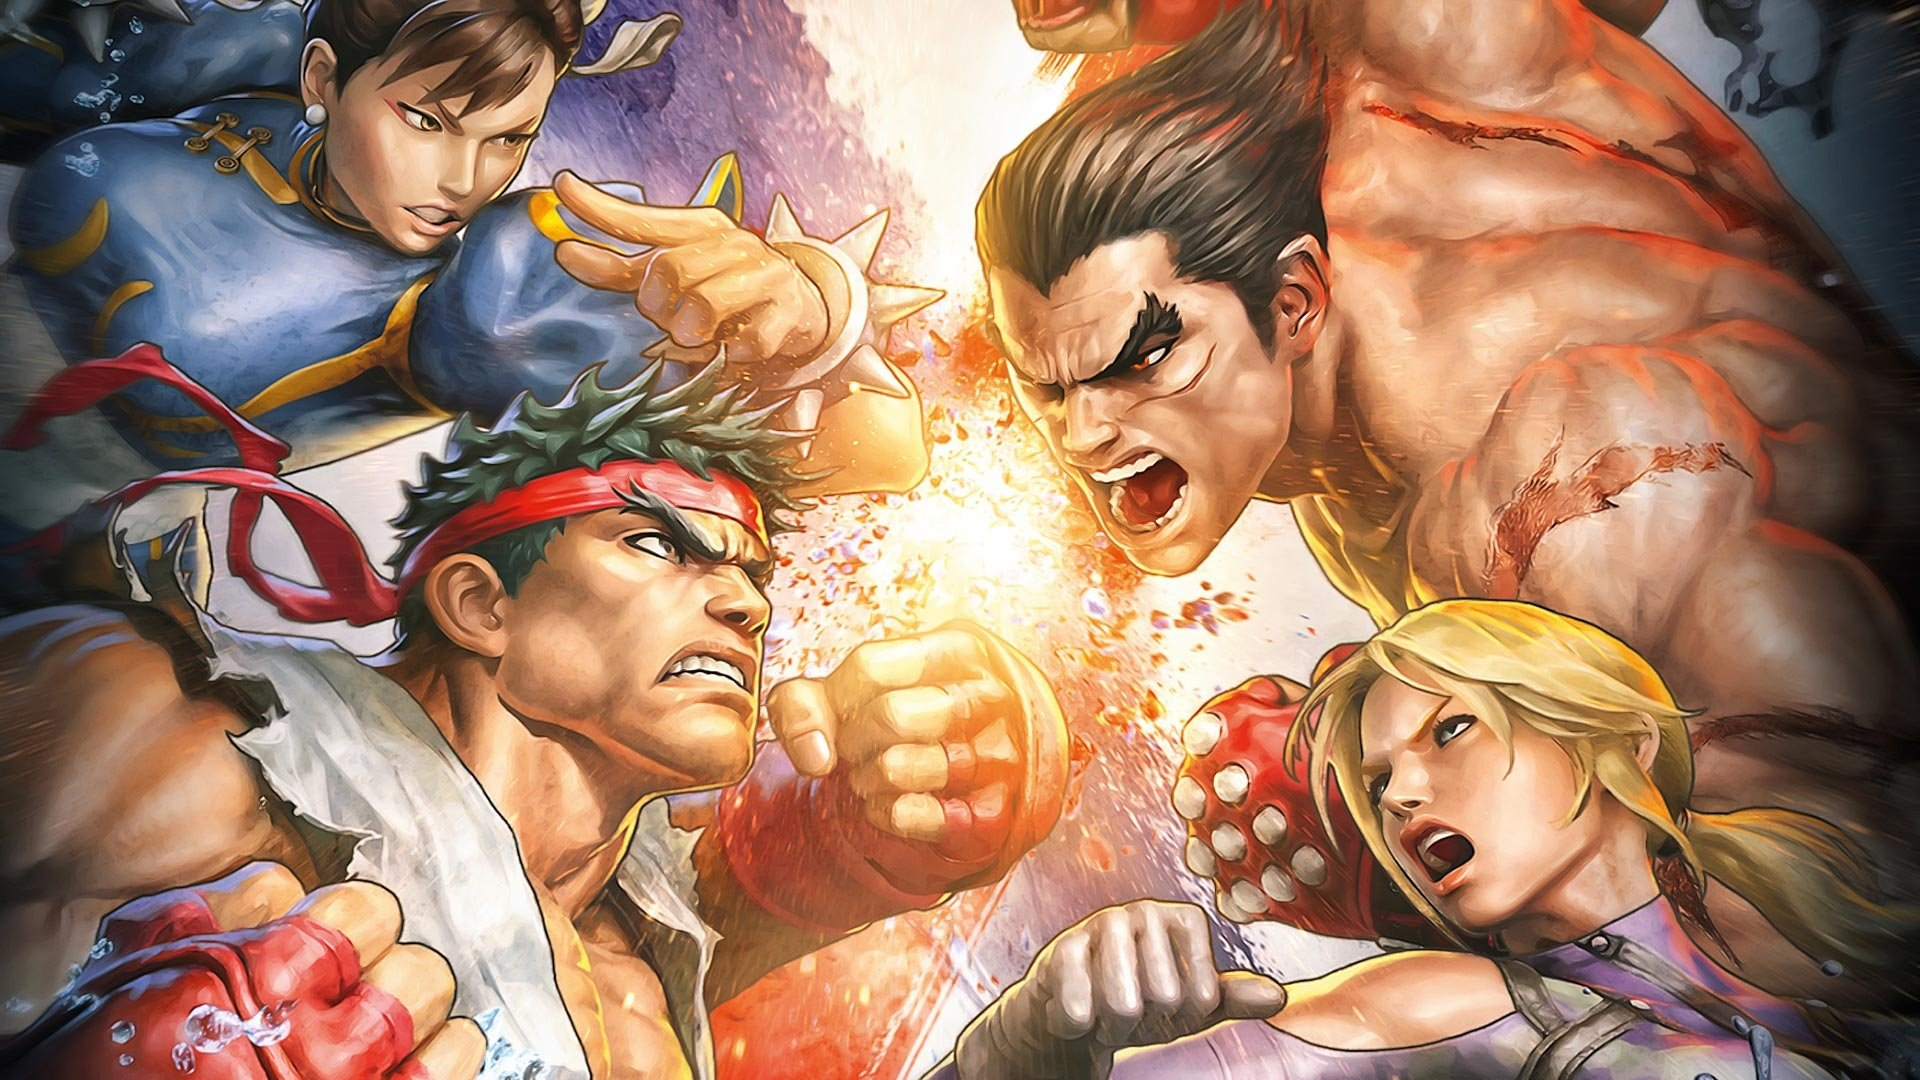 39 Street Fighter X Tekken Hd Wallpapers Background Images Wallpaper Abyss